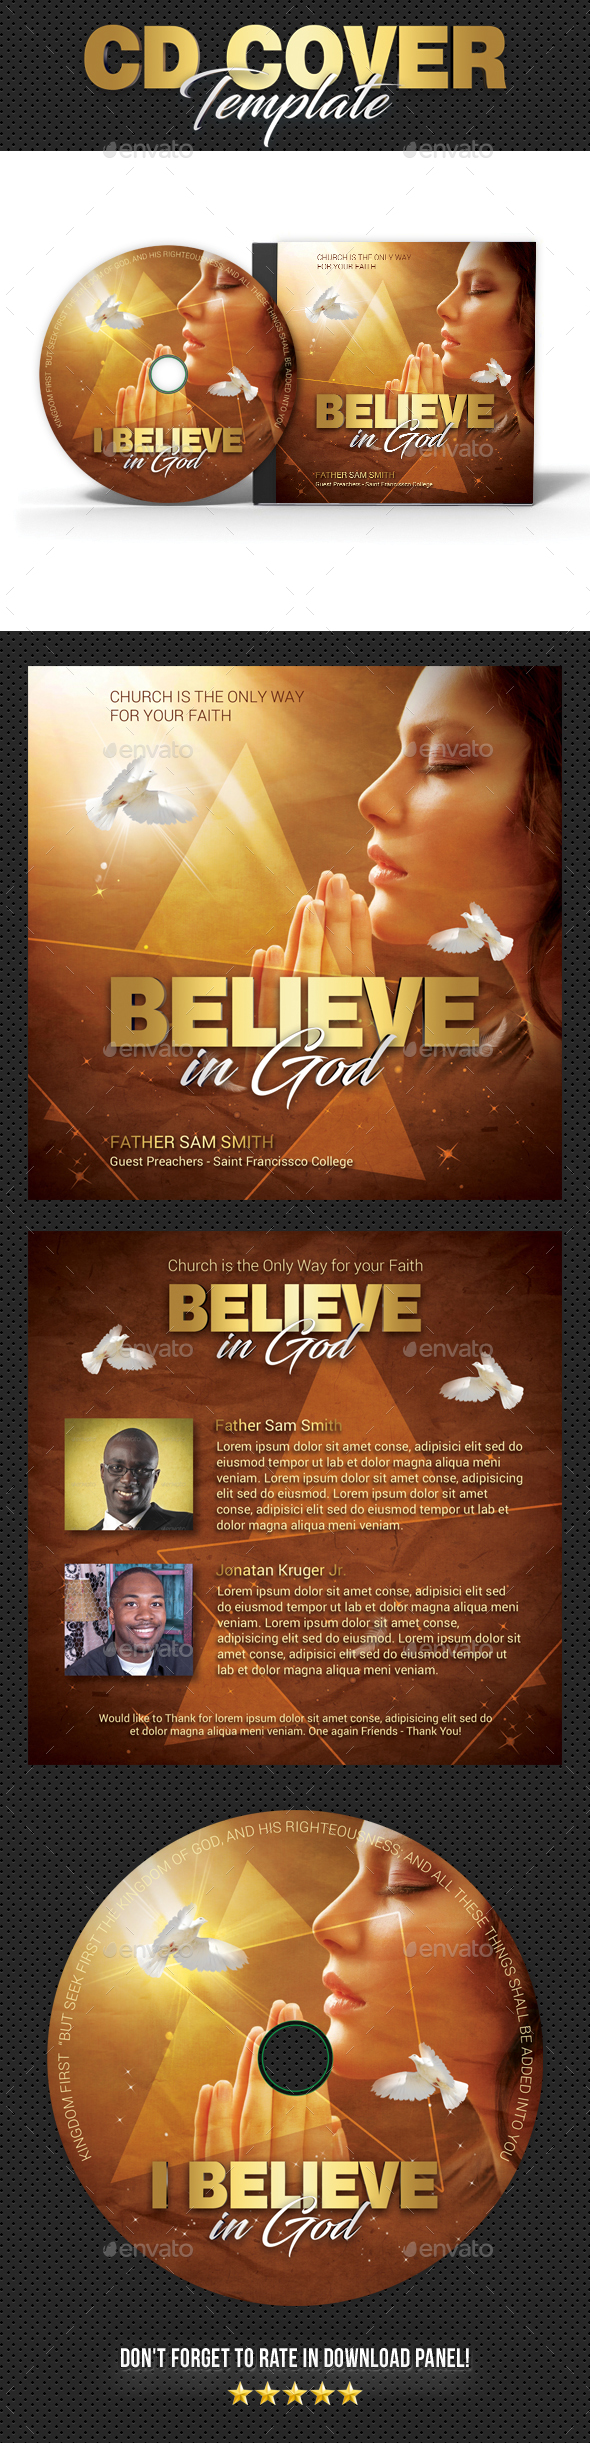 Believe in God CD Cover - CD & DVD Artwork Print Templates